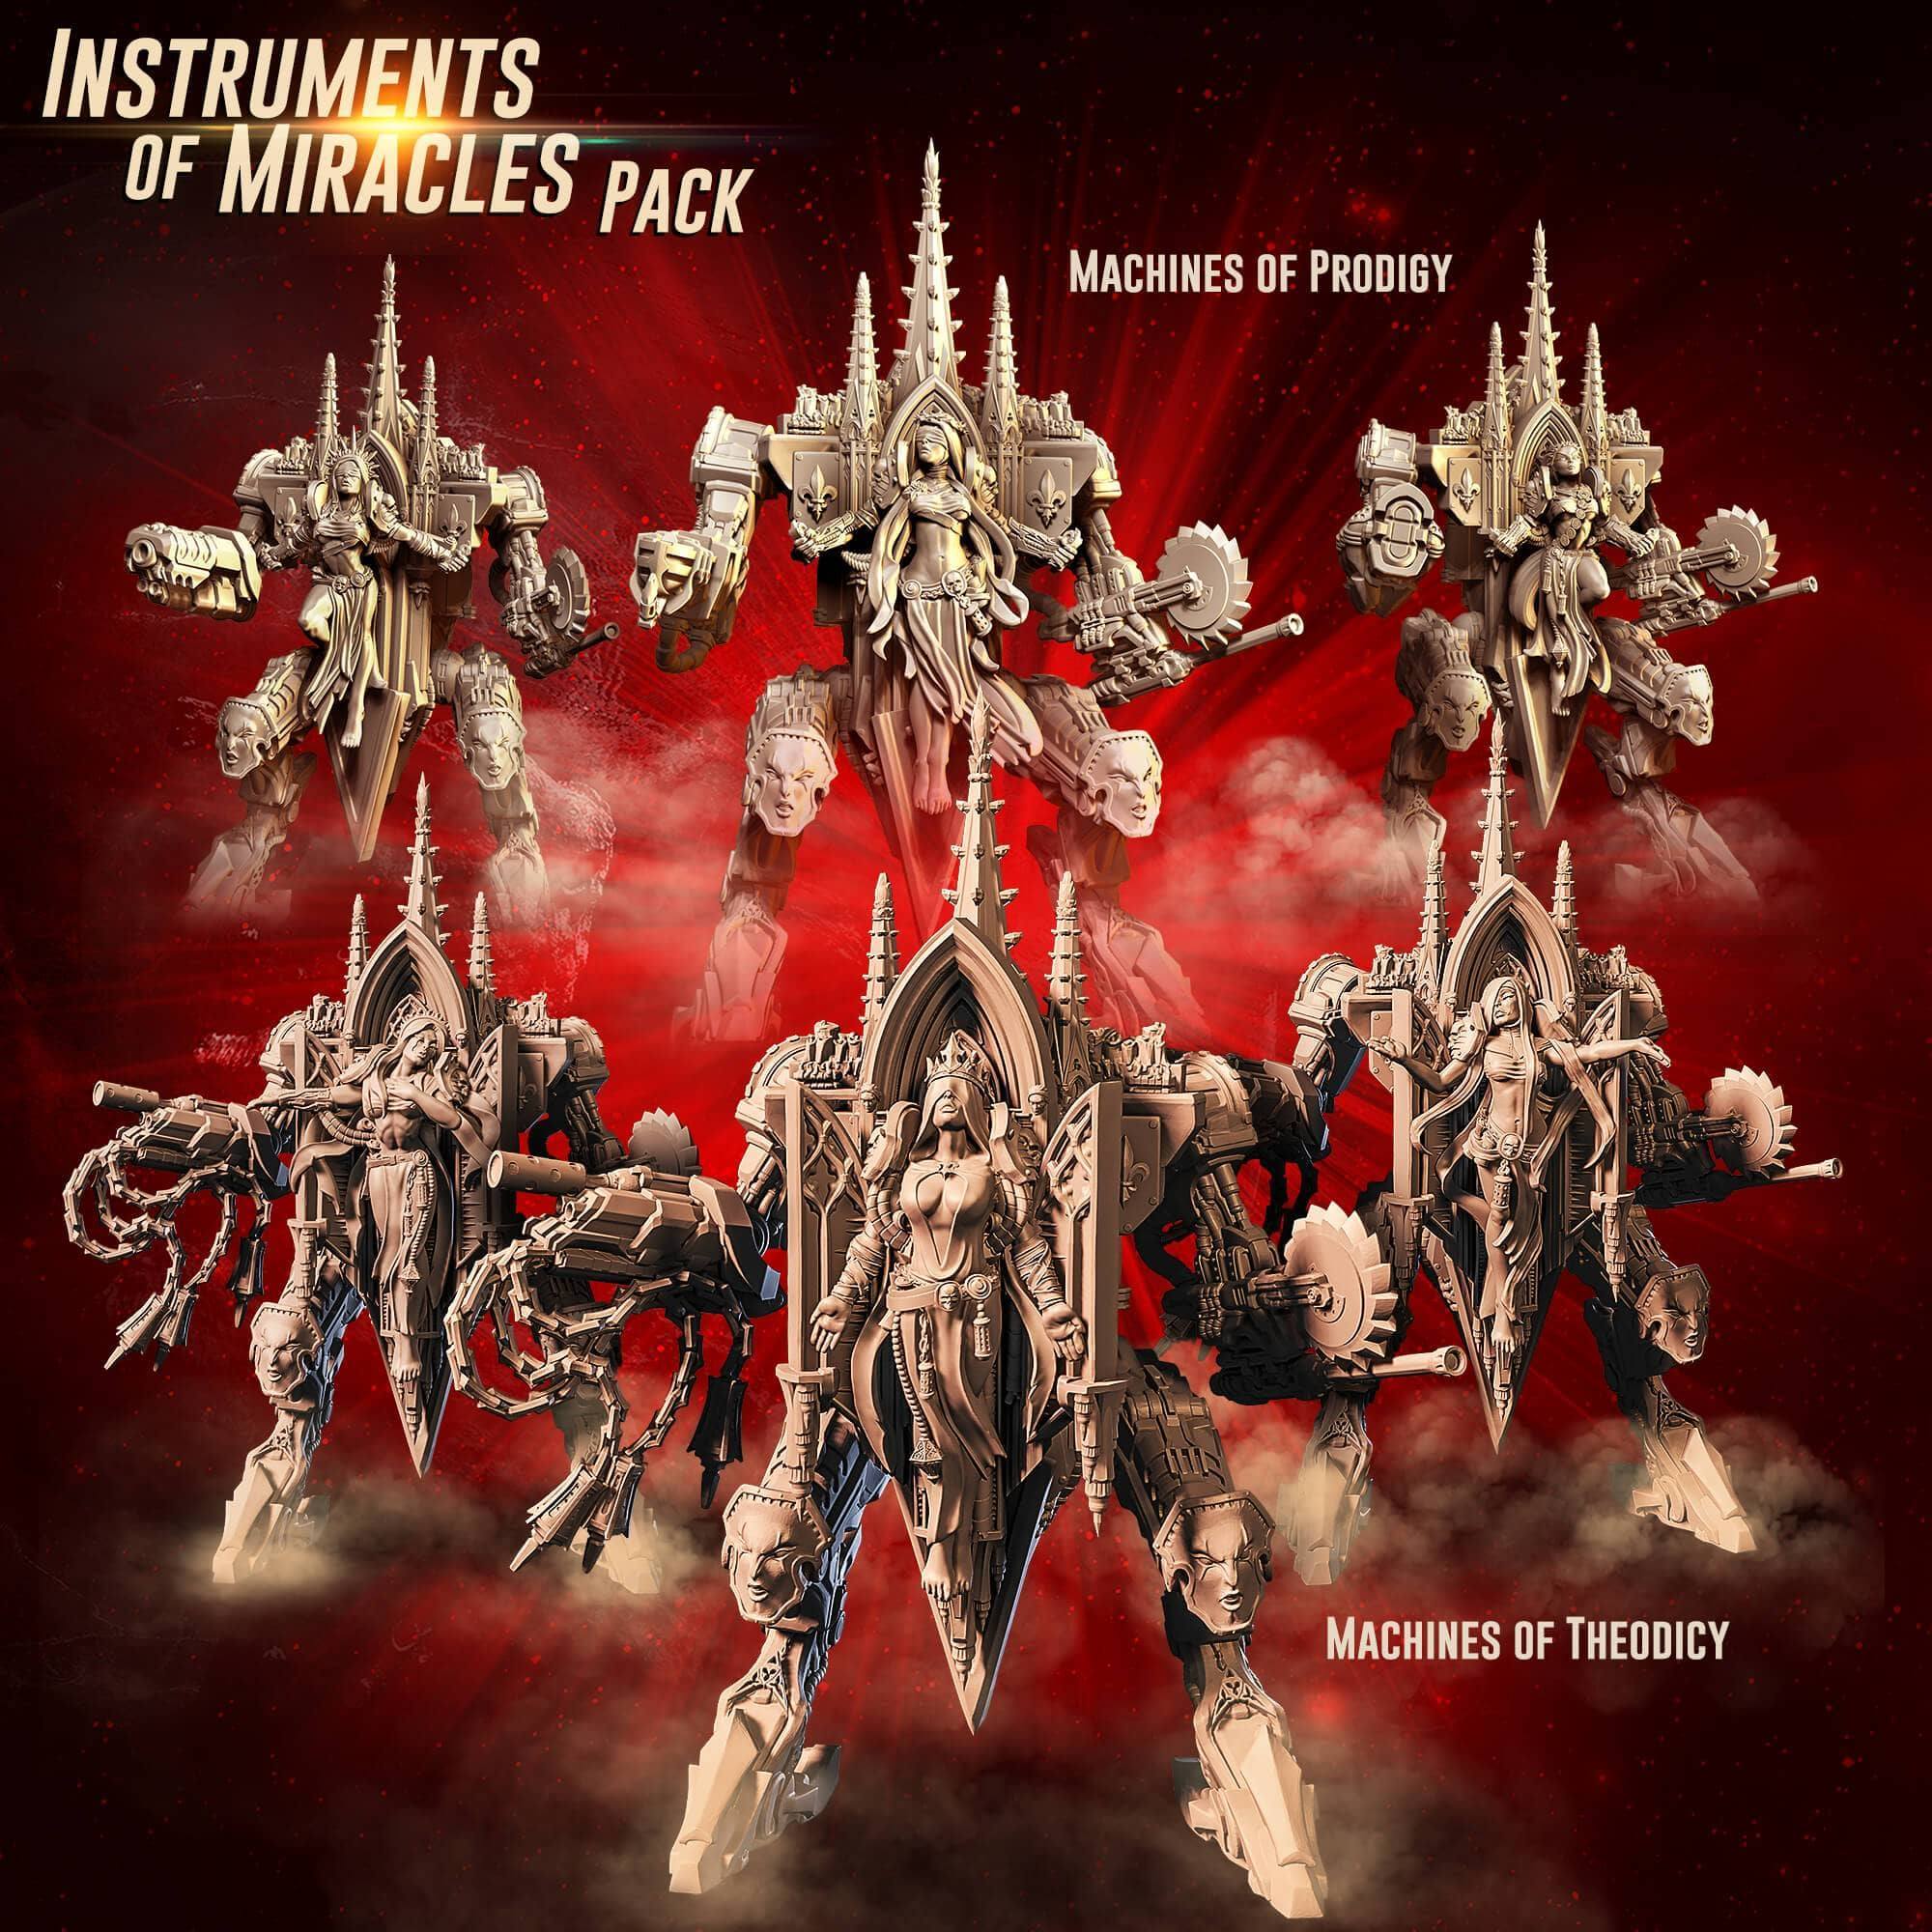 Instruments of Miracles Pack (SoEM - SF) - Raging Heroes